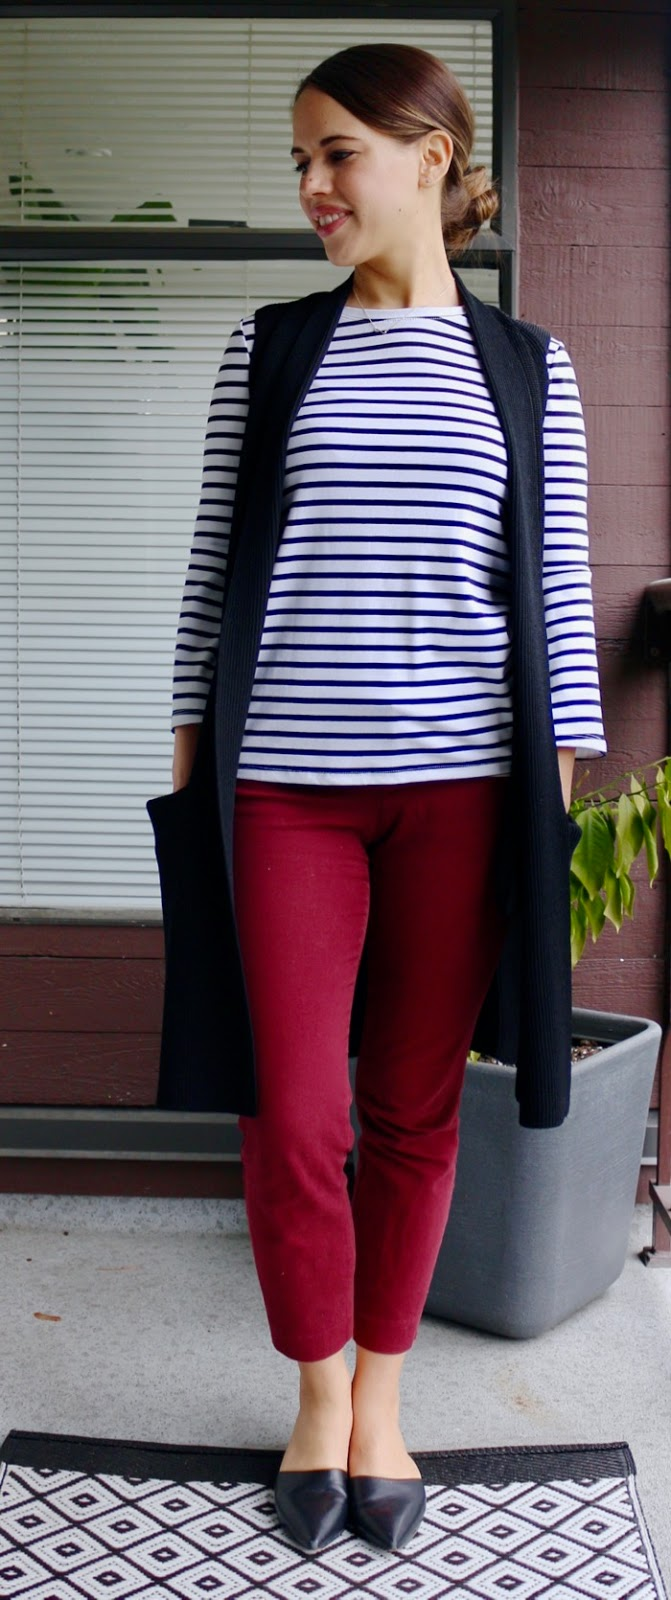 Jules in Flats - Striped Bell Sleeve Top with Sweater Vest and Mules